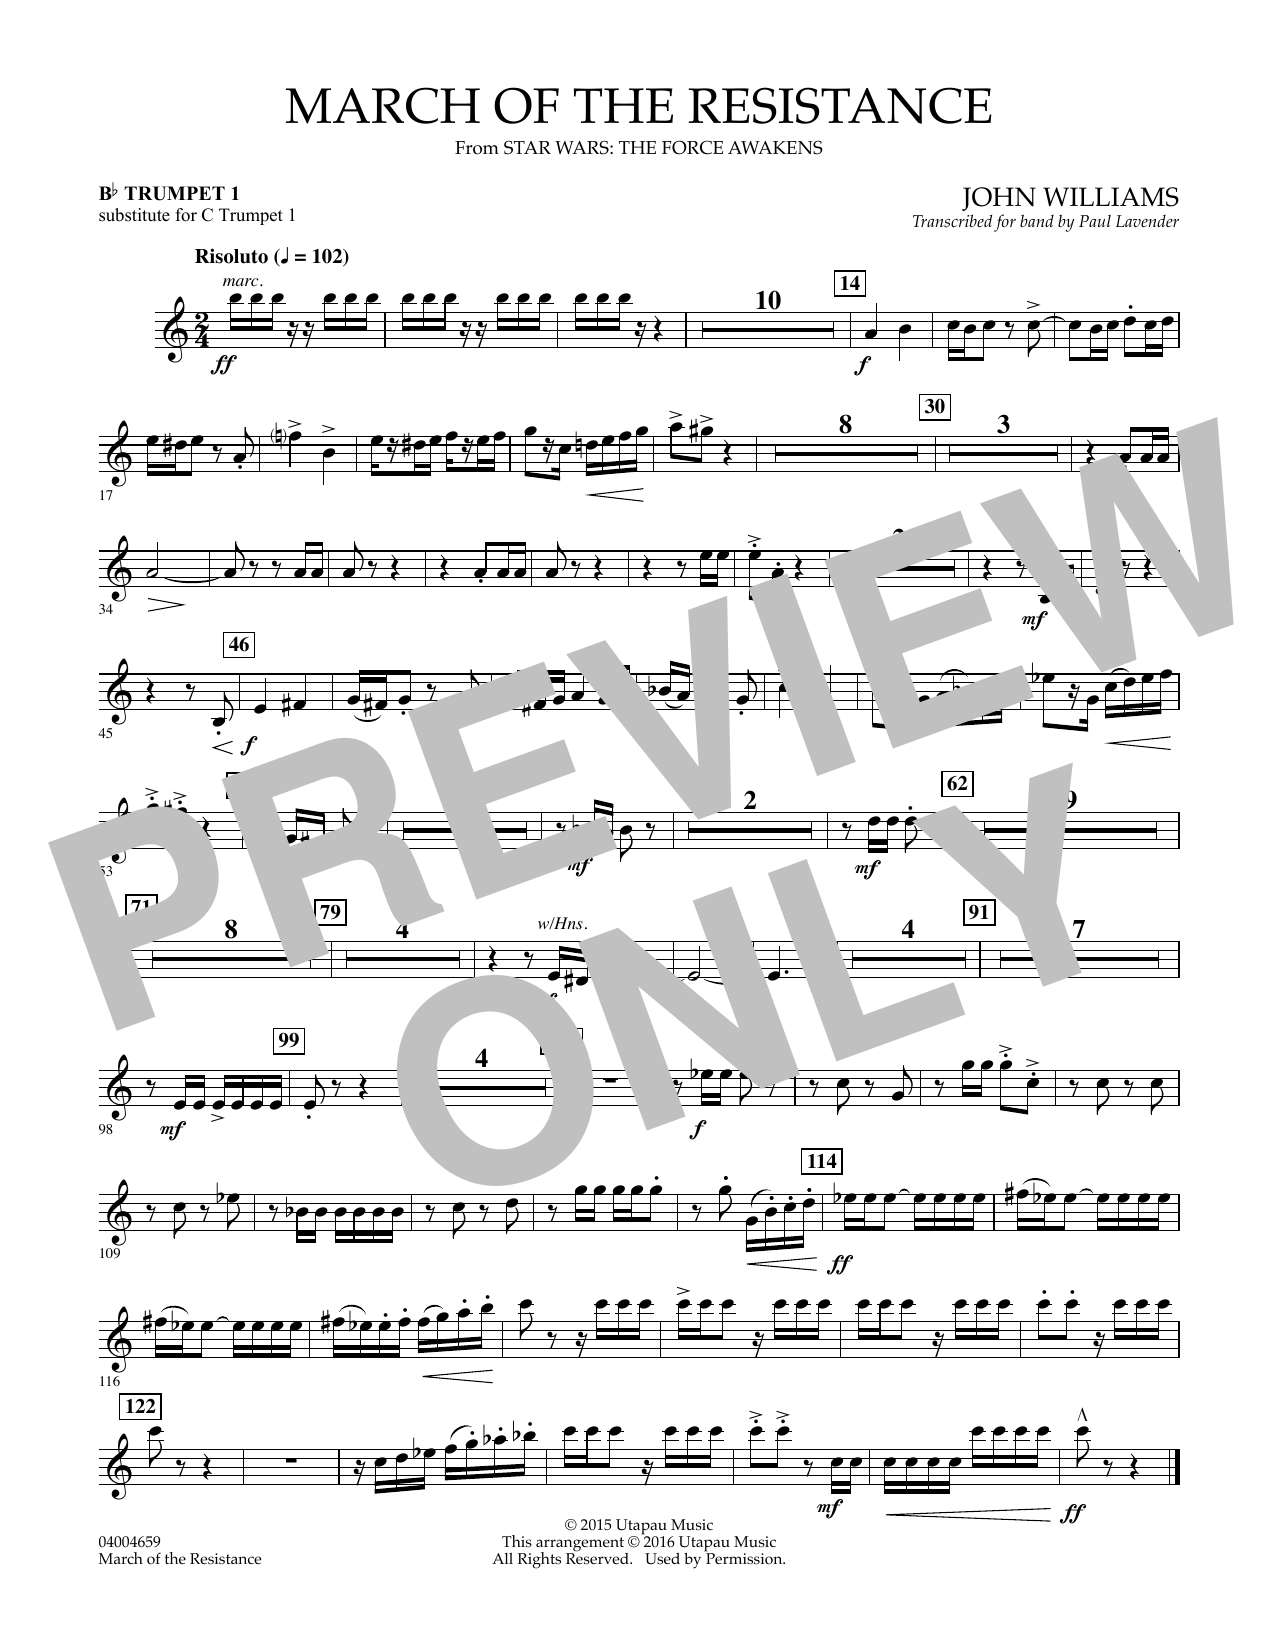 March of the Resistance - Bb Trumpet 1 (sub. C Tpt. 1 - - Bb Trumpet 1 (sub. C Tpt. 1) Sheet Music